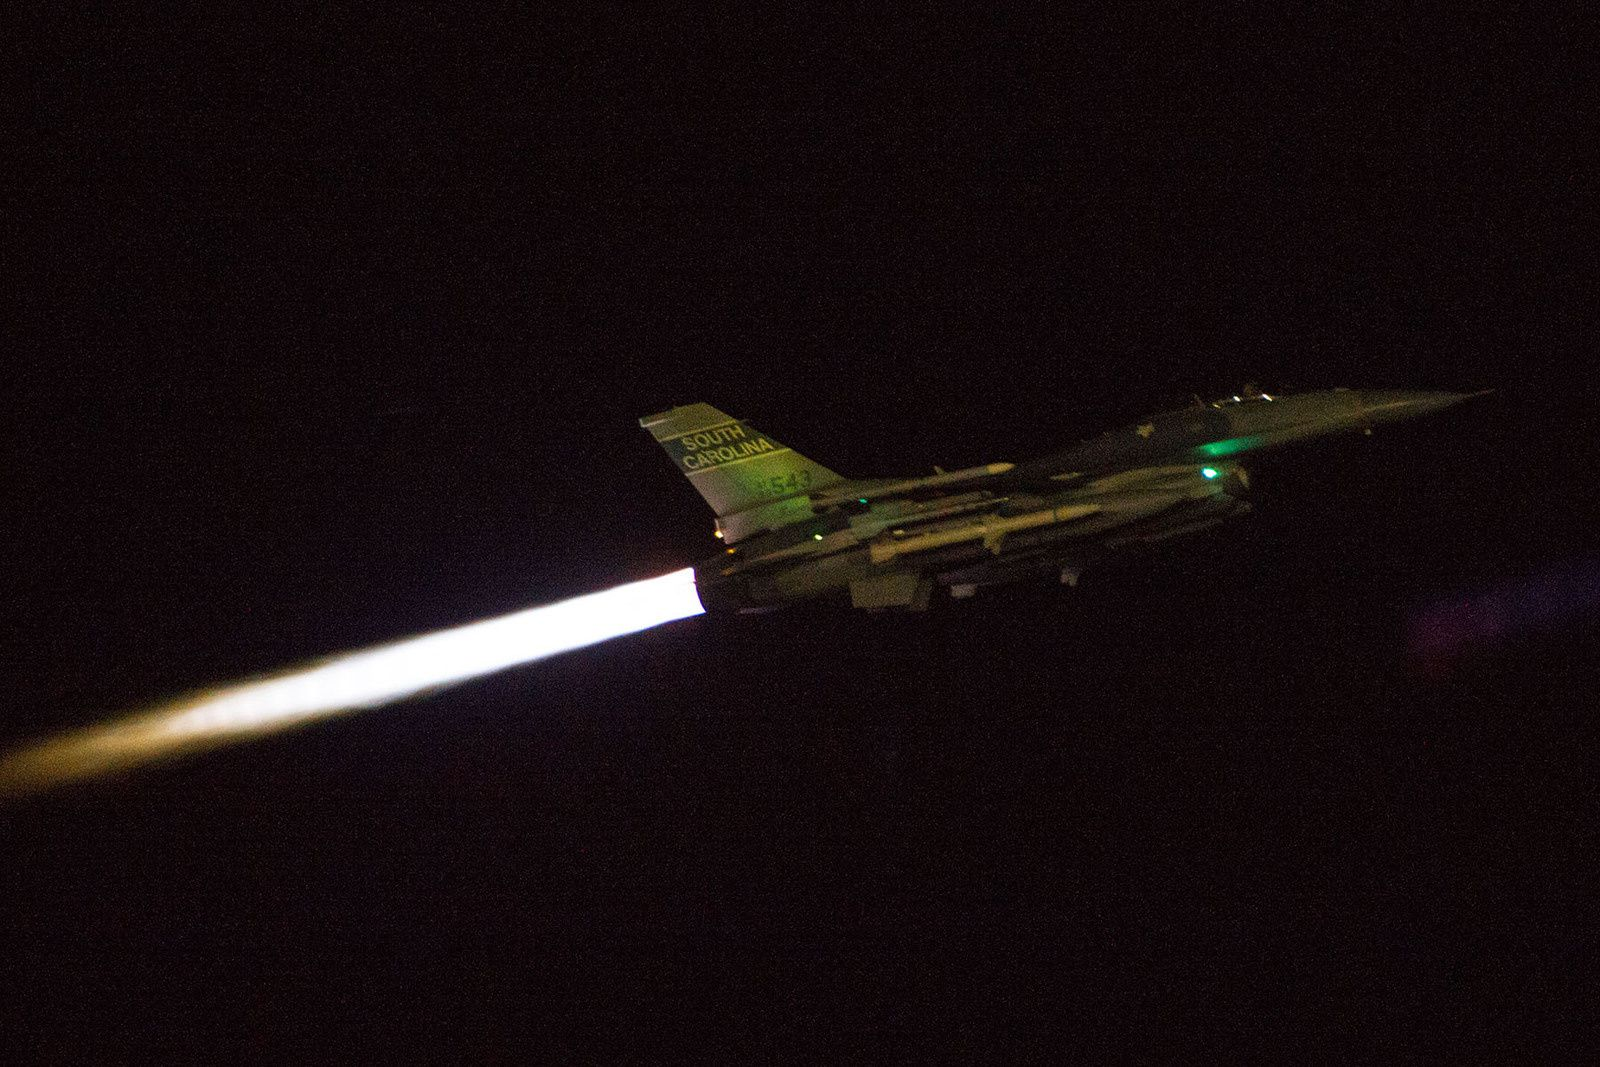 Deux F-16C de l'Air National Guard se percutent en vol lors d'un vol de nuit